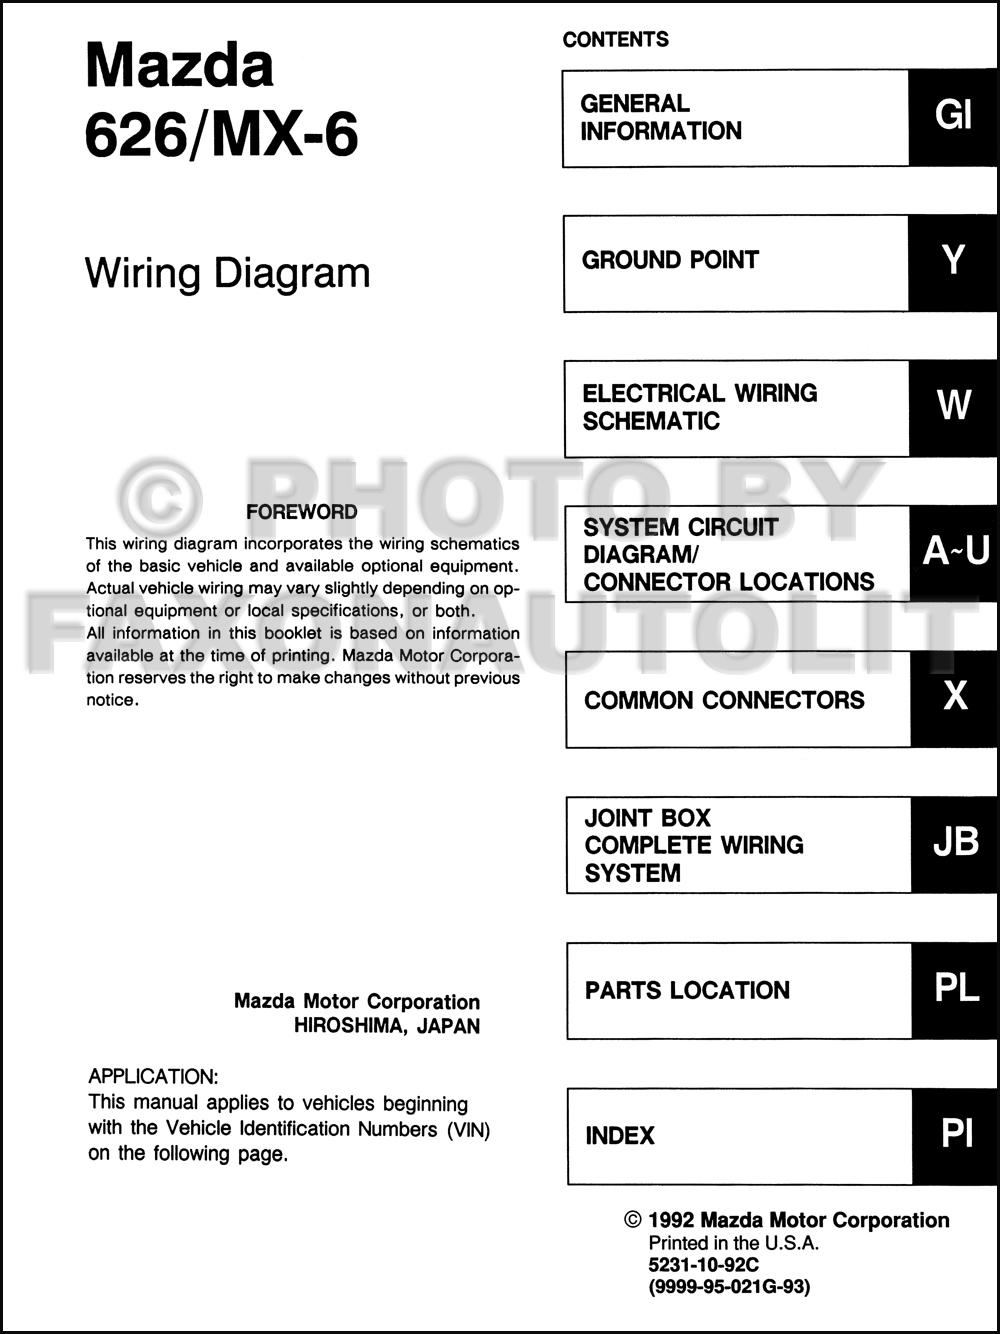 1996 Mazda 626 Lights Wiring Diagram Library 93 Miata Diagrams On E46 Electric Wire Harness